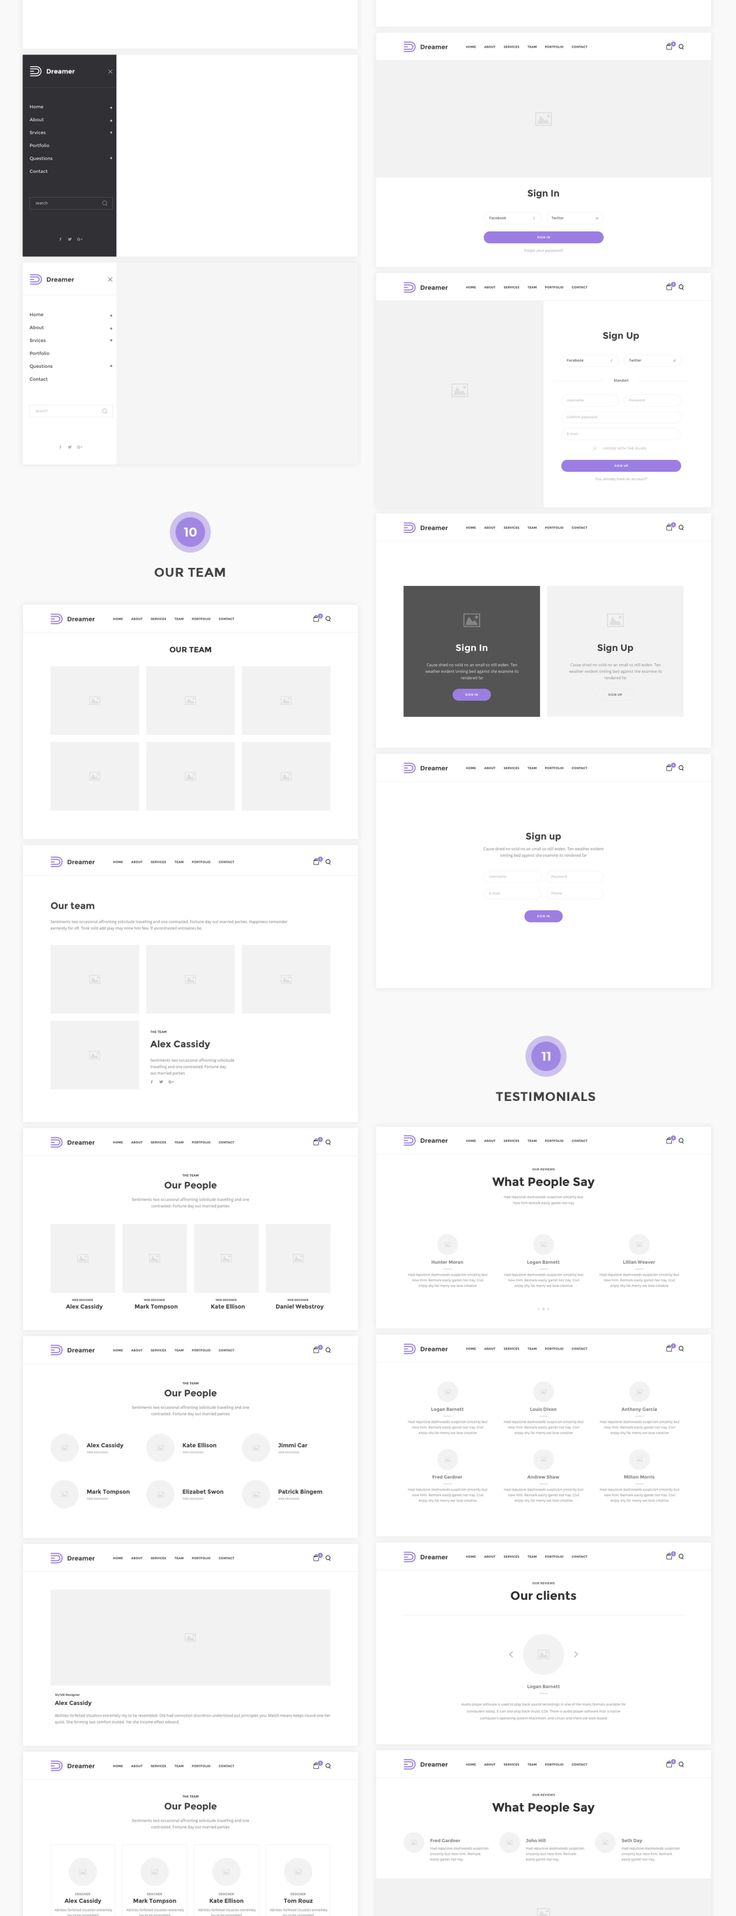 Dreamer is an excellent wireframe tool for creation of